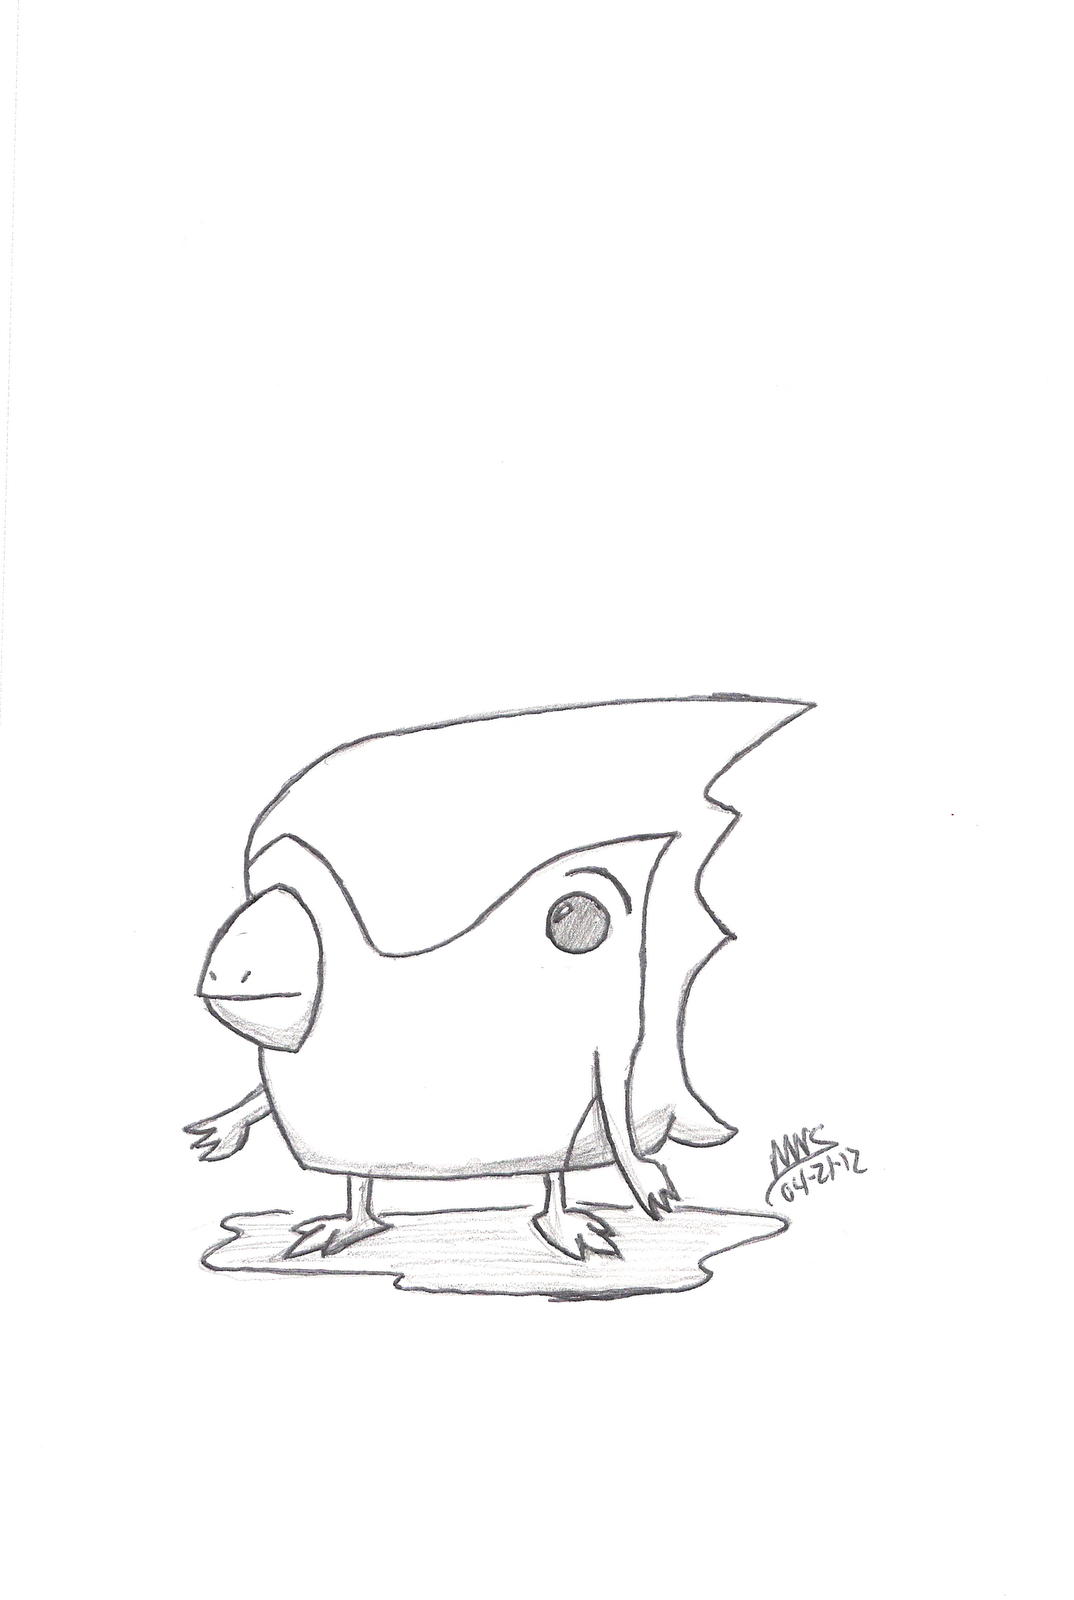 cardinals football coloring pages - photo#19